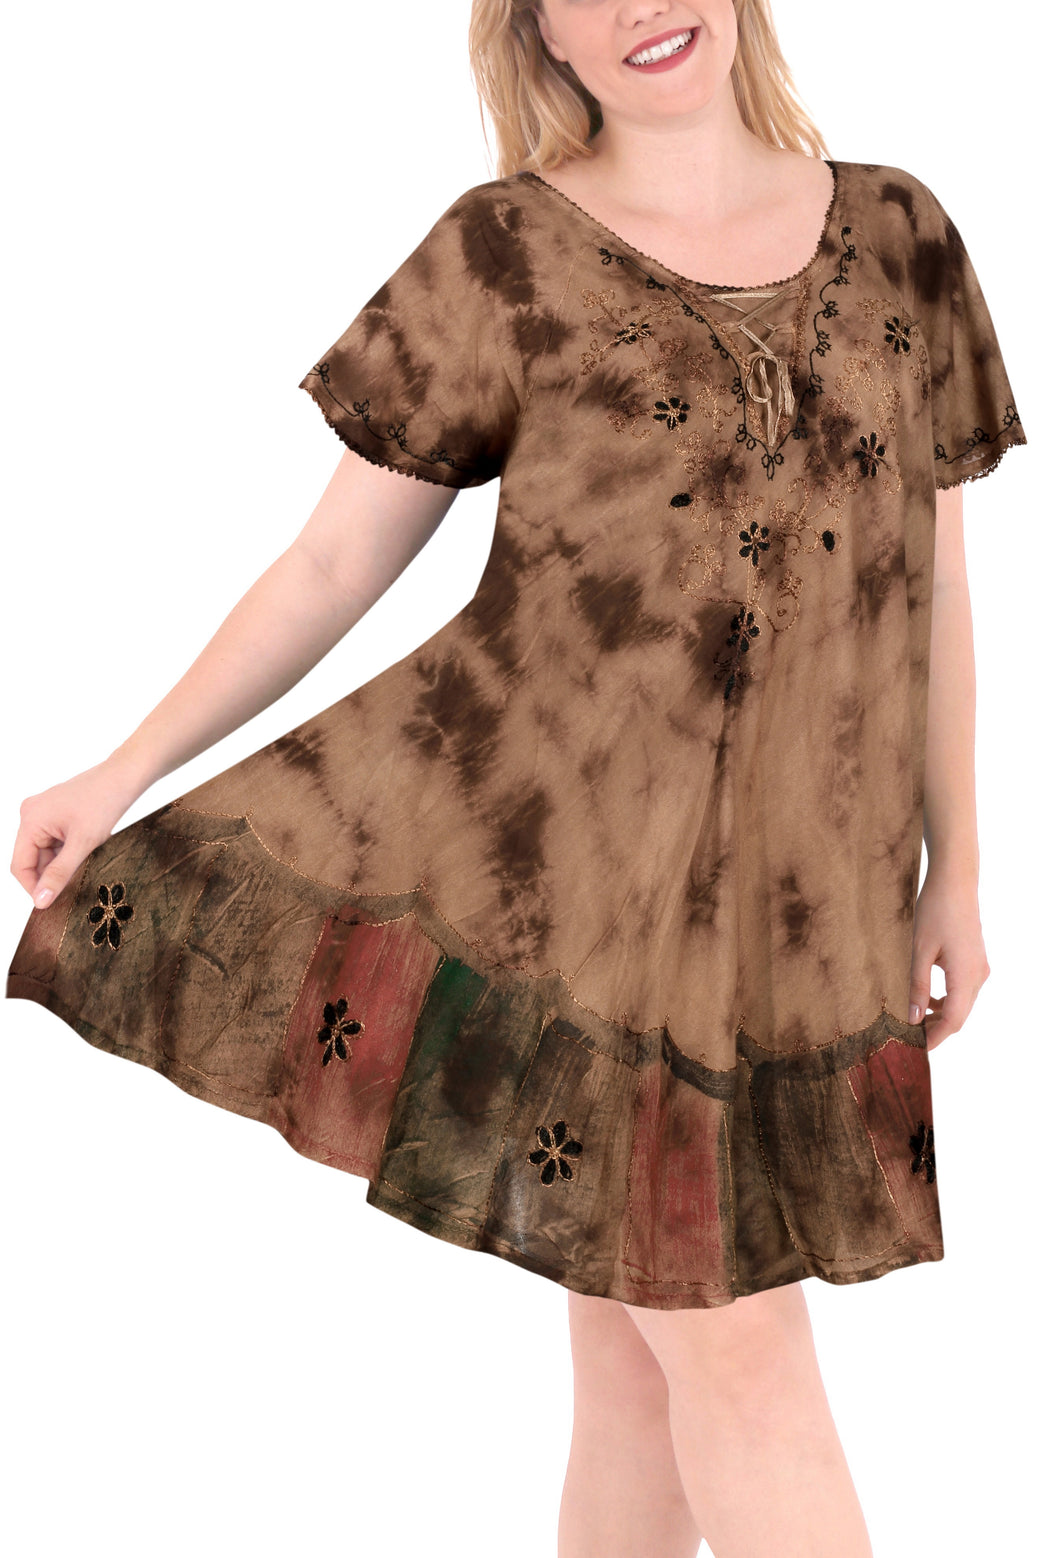 LA LEELA Rayon Tie Dye Length Knee Halter Tube Casual DRESS Beach Cover up Brown 3282 Plus Size